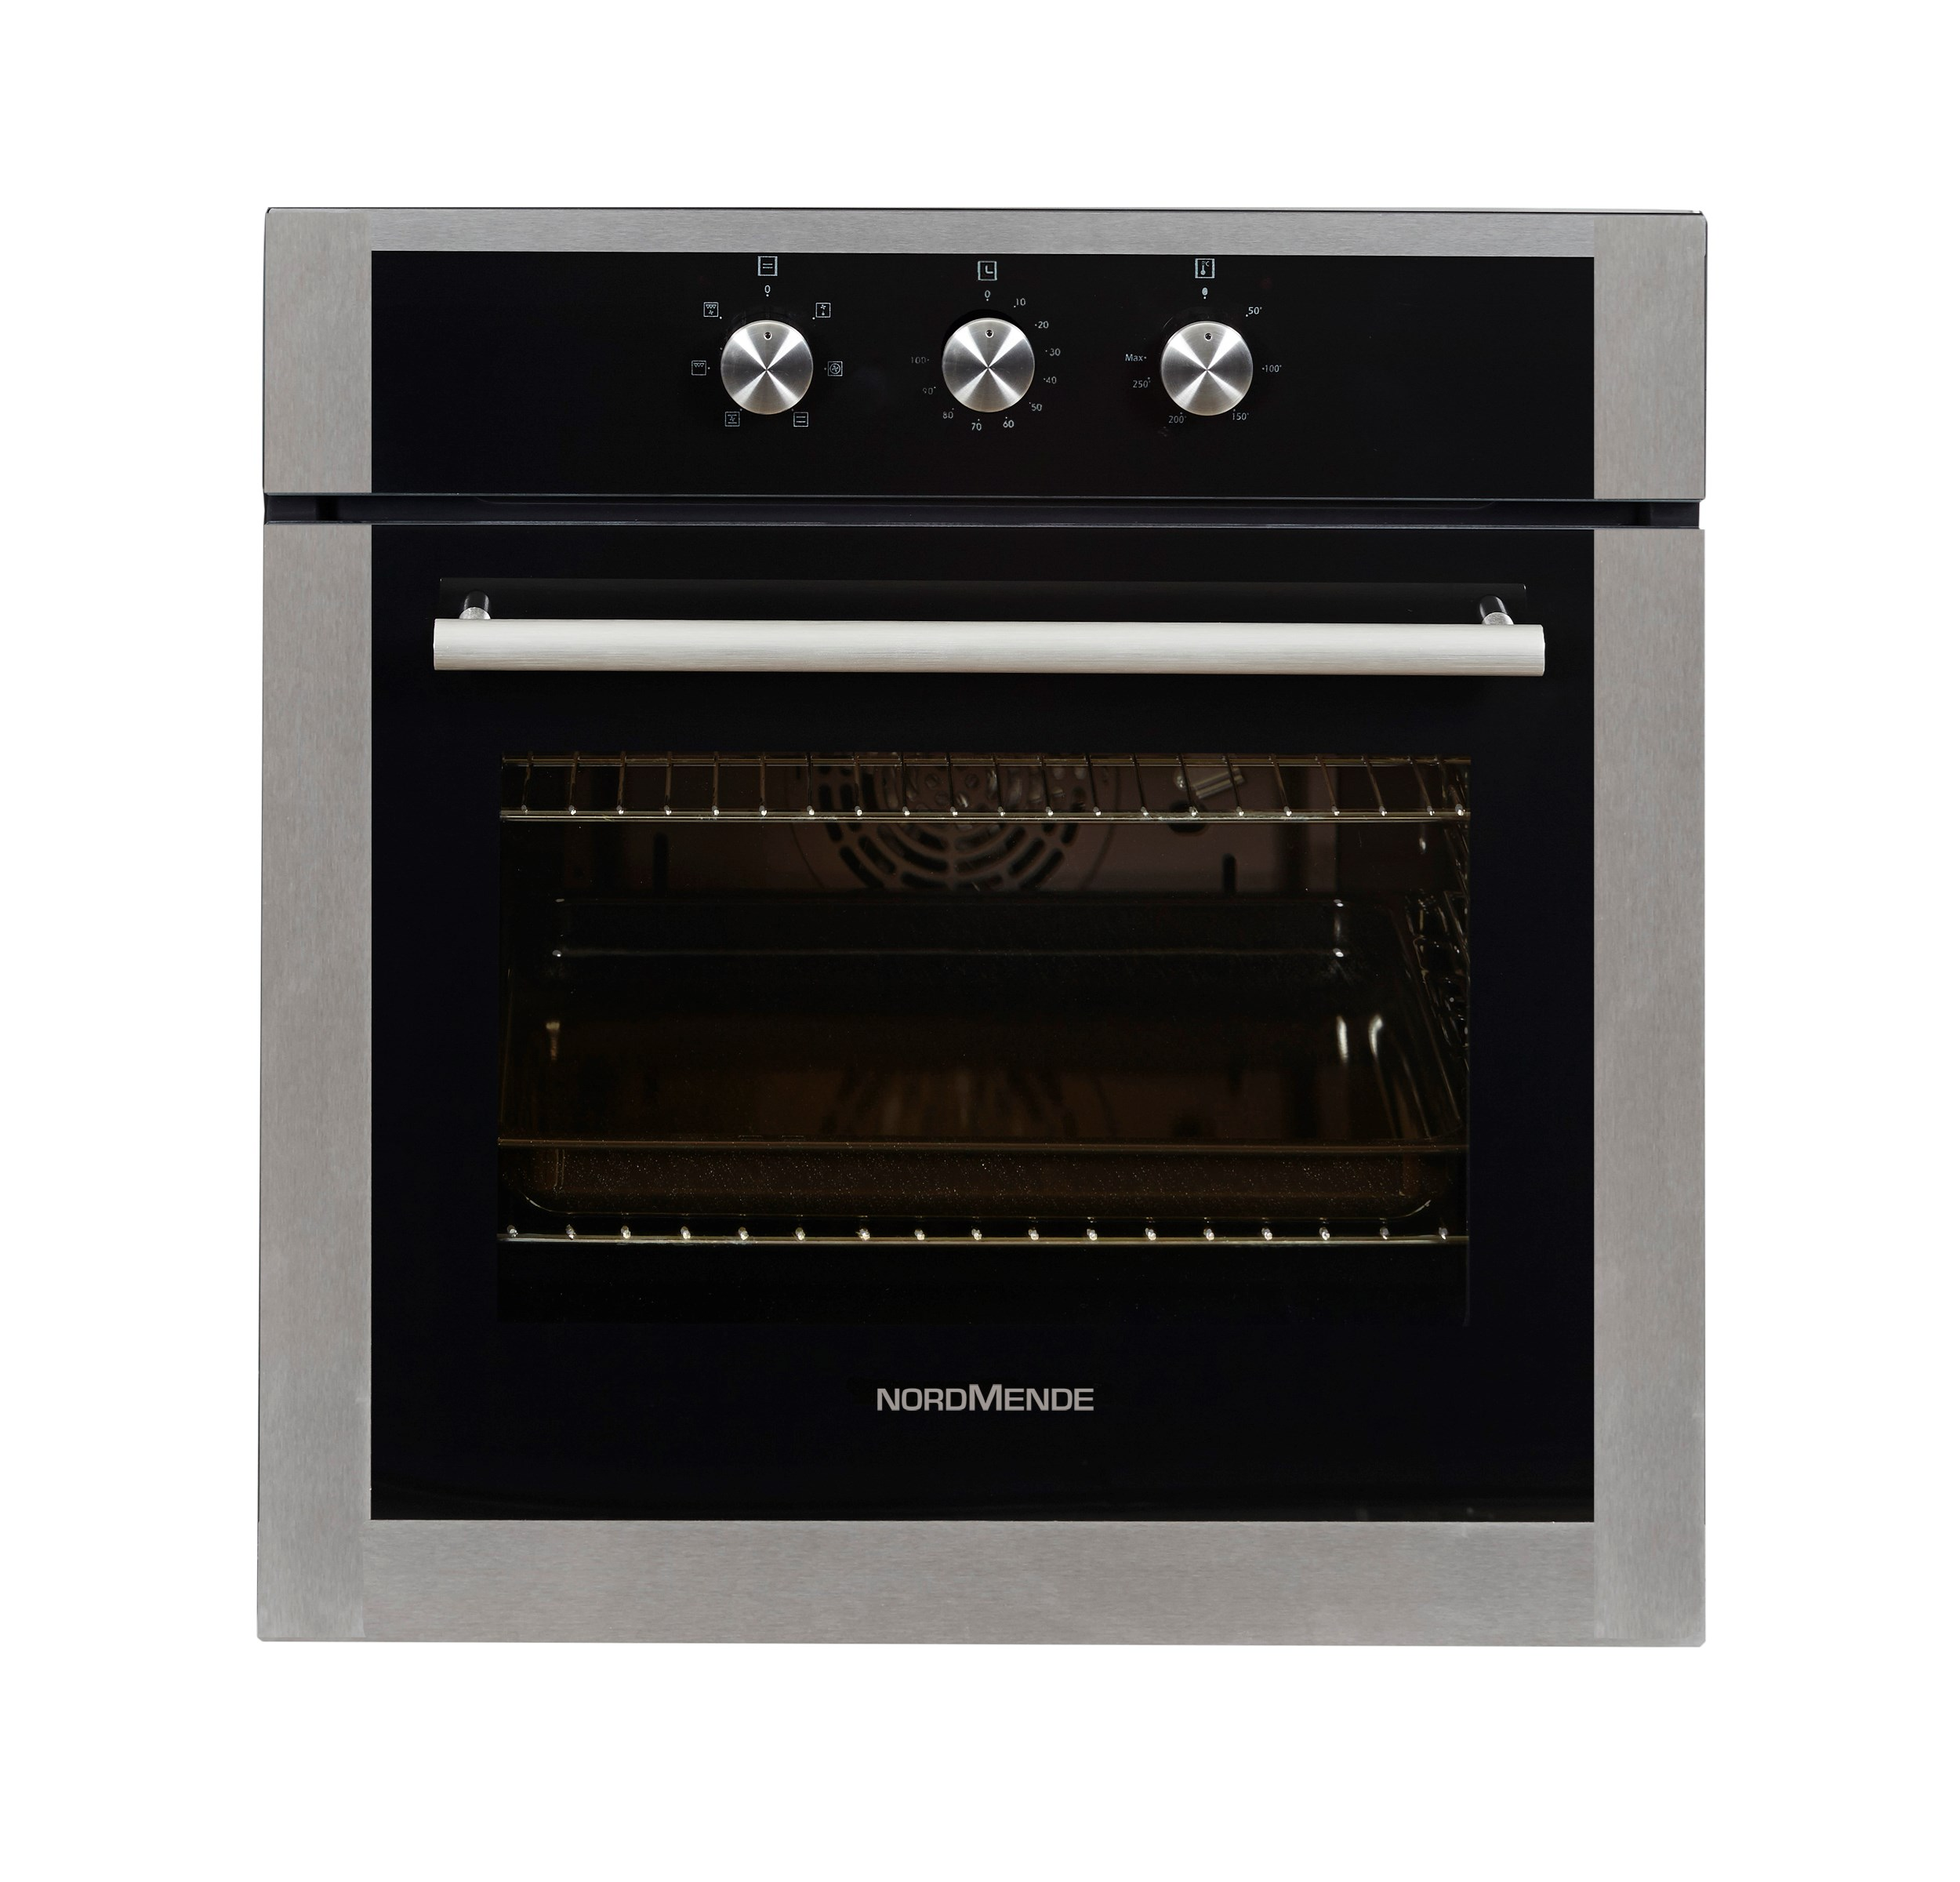 Nordmende Black Amp Stainless Steel Single Fan Oven Amp Grill